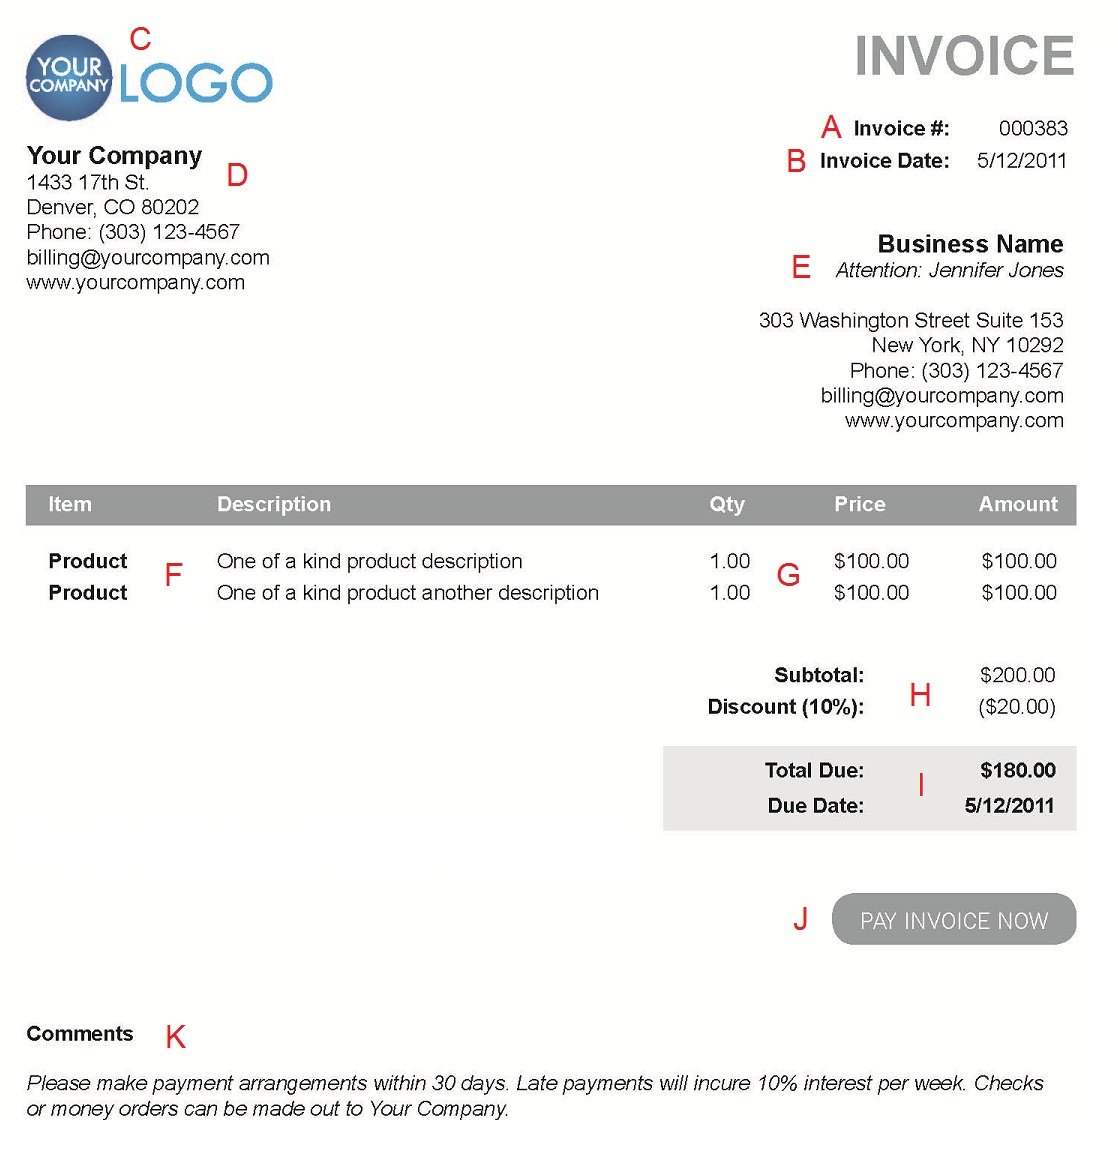 Opposenewapstandardsus  Outstanding The  Different Sections Of An Electronic Payment Invoice With Gorgeous A  With Breathtaking Receipt Database Also Child Support Receipting Unit Nashville Tn In Addition Receipt Printer Paper Size And Loan Receipt Template As Well As Download Receipt Additionally Vehicle Receipt From Paysimplecom With Opposenewapstandardsus  Gorgeous The  Different Sections Of An Electronic Payment Invoice With Breathtaking A  And Outstanding Receipt Database Also Child Support Receipting Unit Nashville Tn In Addition Receipt Printer Paper Size From Paysimplecom